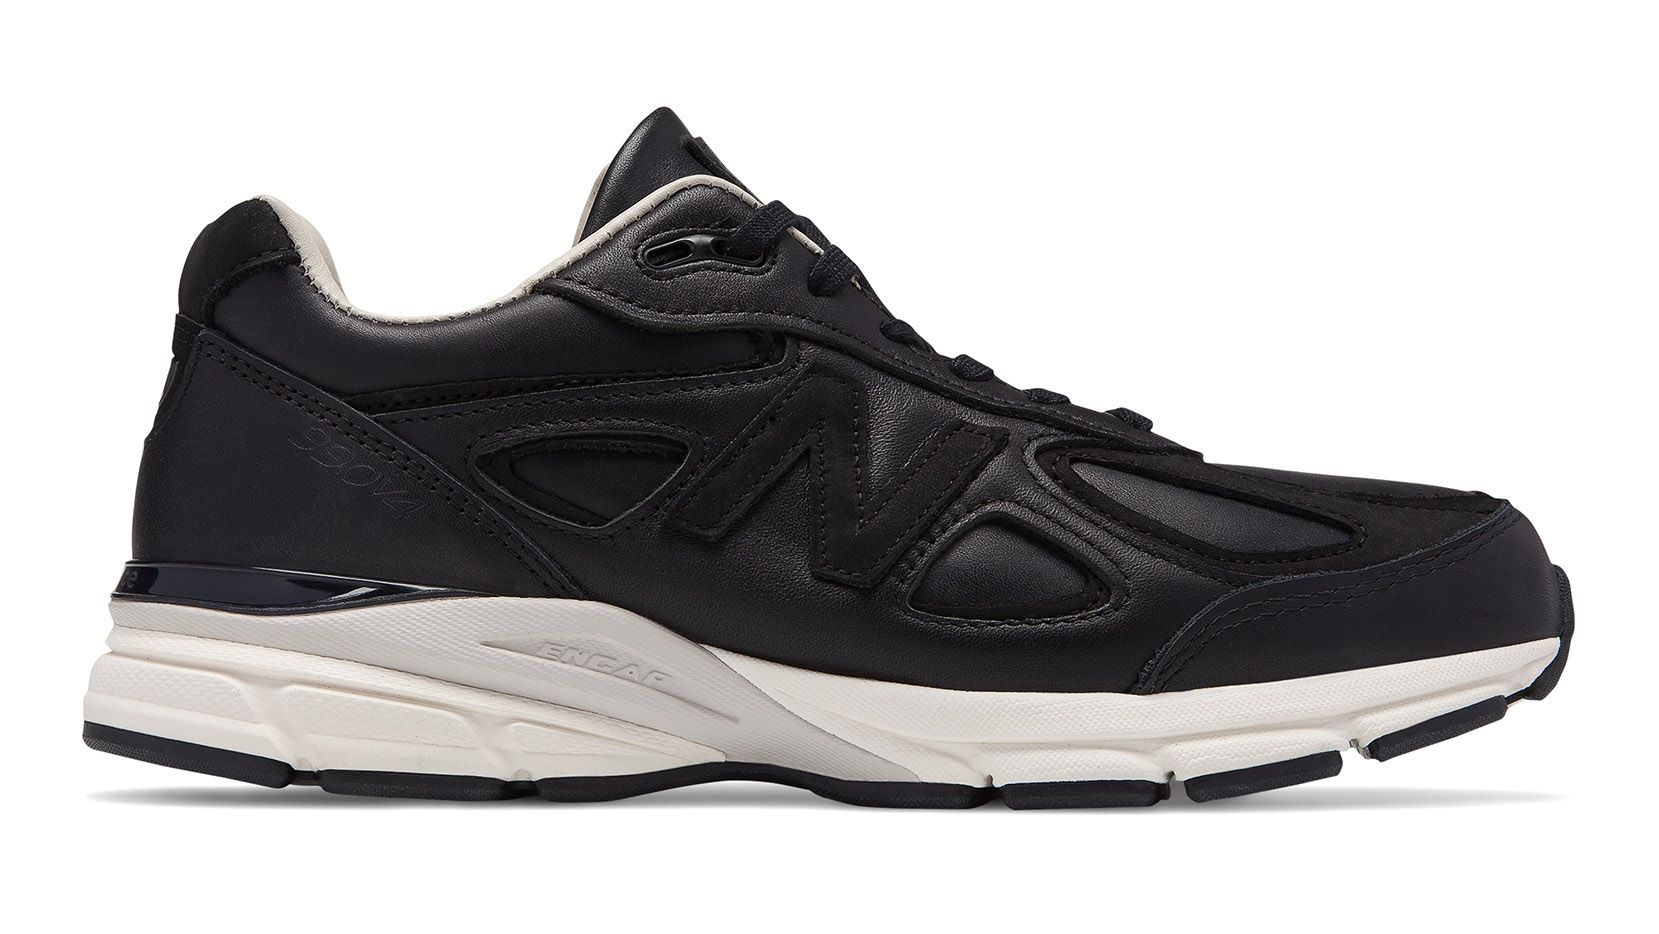 990v4 Made in US New balance